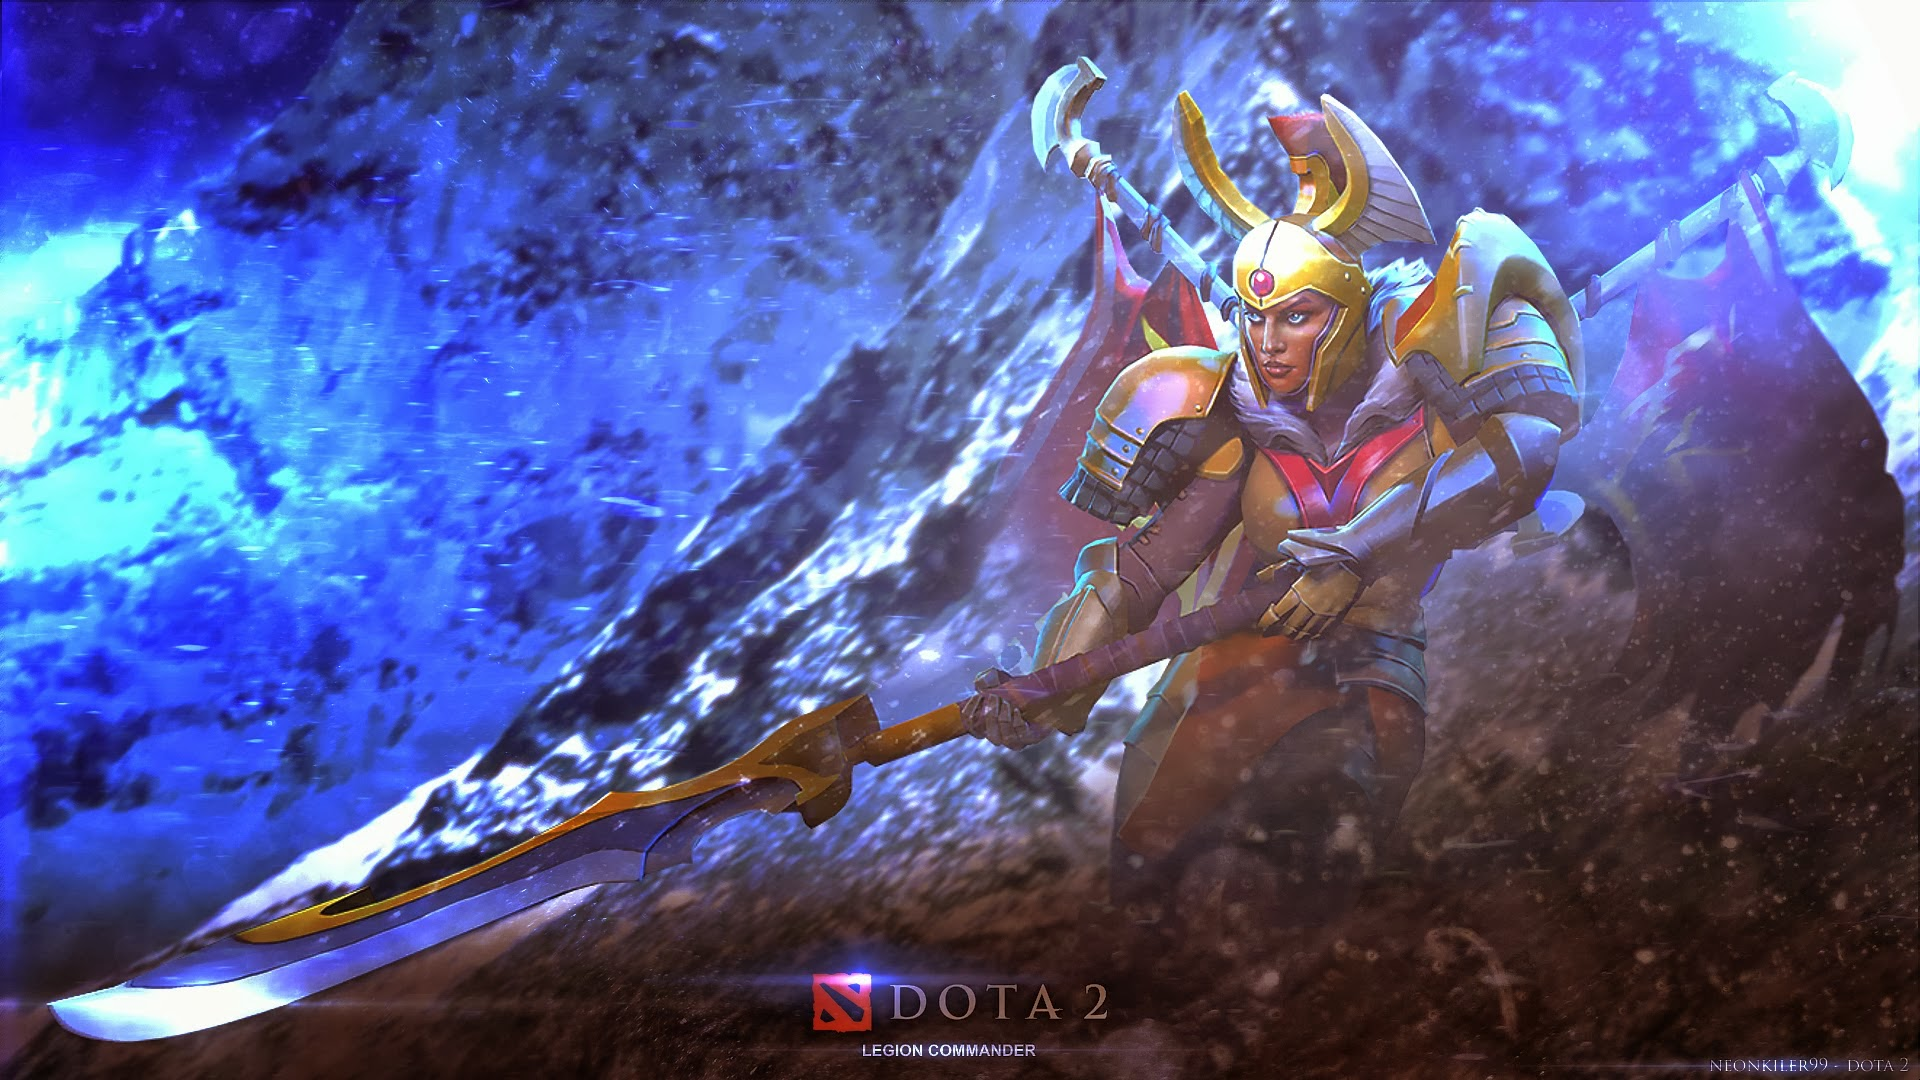 dota2 legion commander hd desktop wallpapers 7wallpapers net